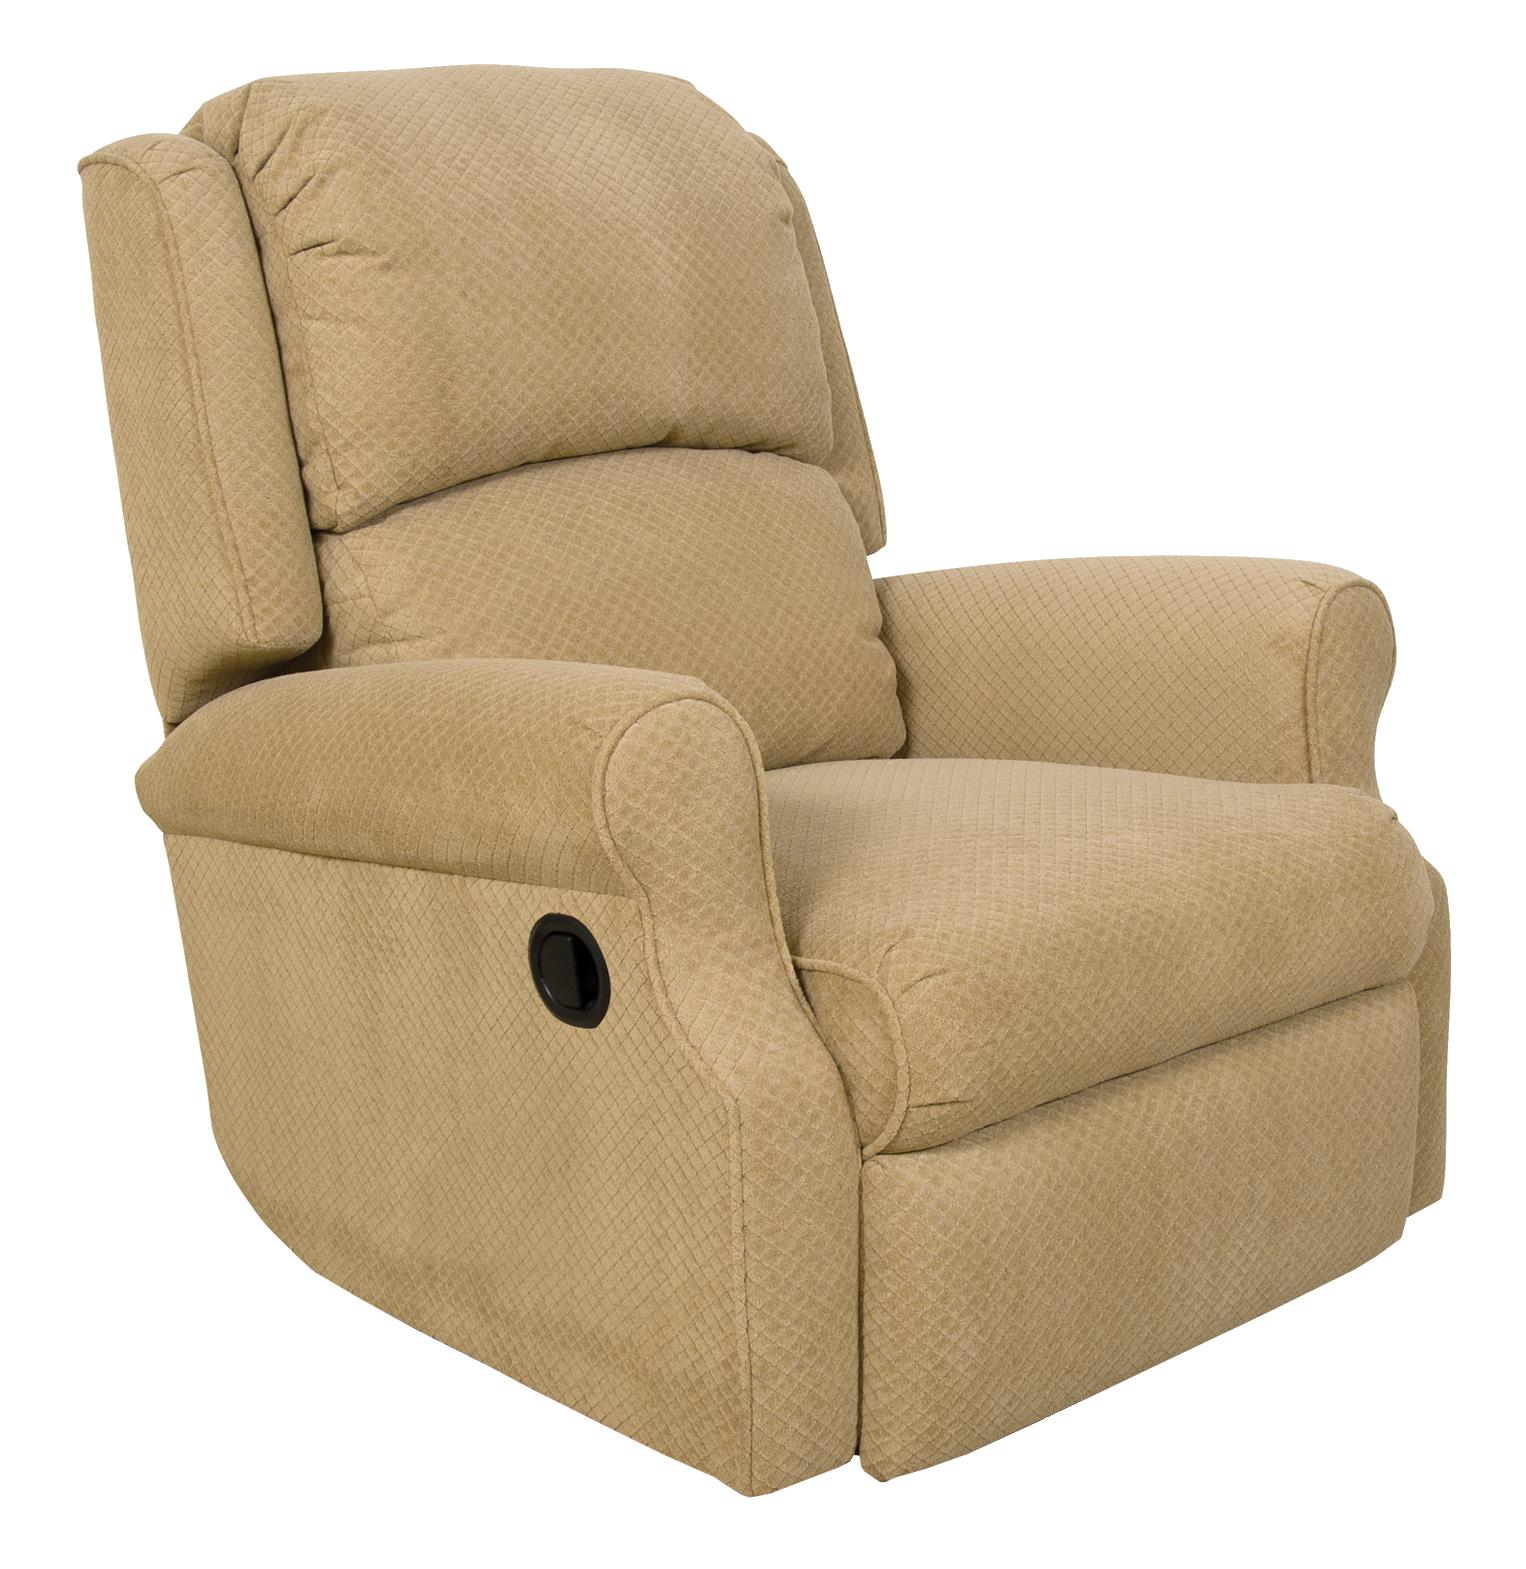 Marybeth Min Prox Recliner with Power by England at Lindy's Furniture Company